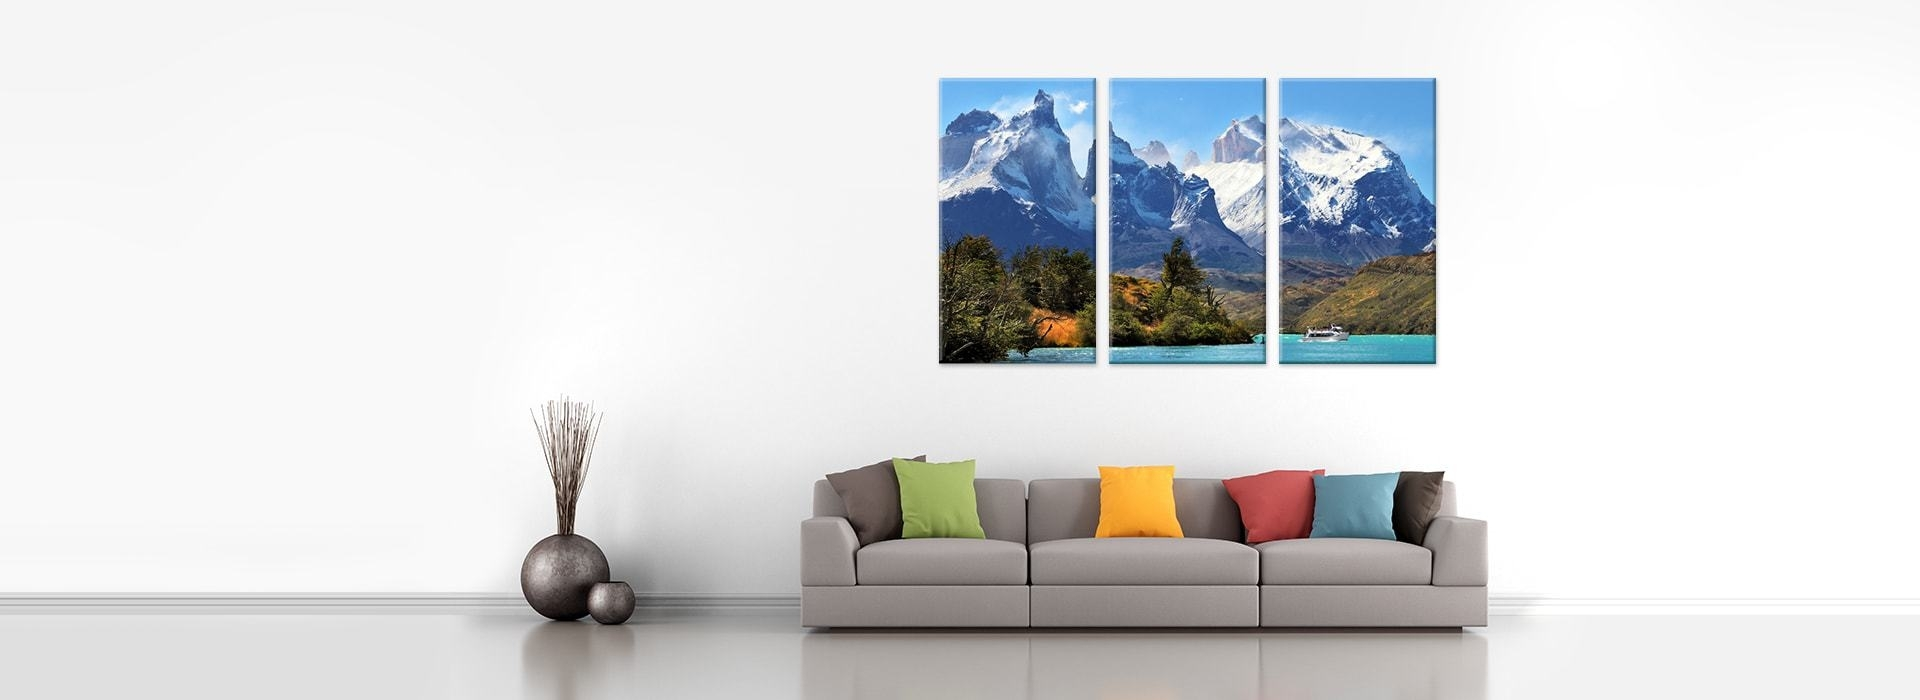 Canvas Prints | Canvas Factory Throughout 2017 Canvas Wall Art In Australia (View 6 of 15)